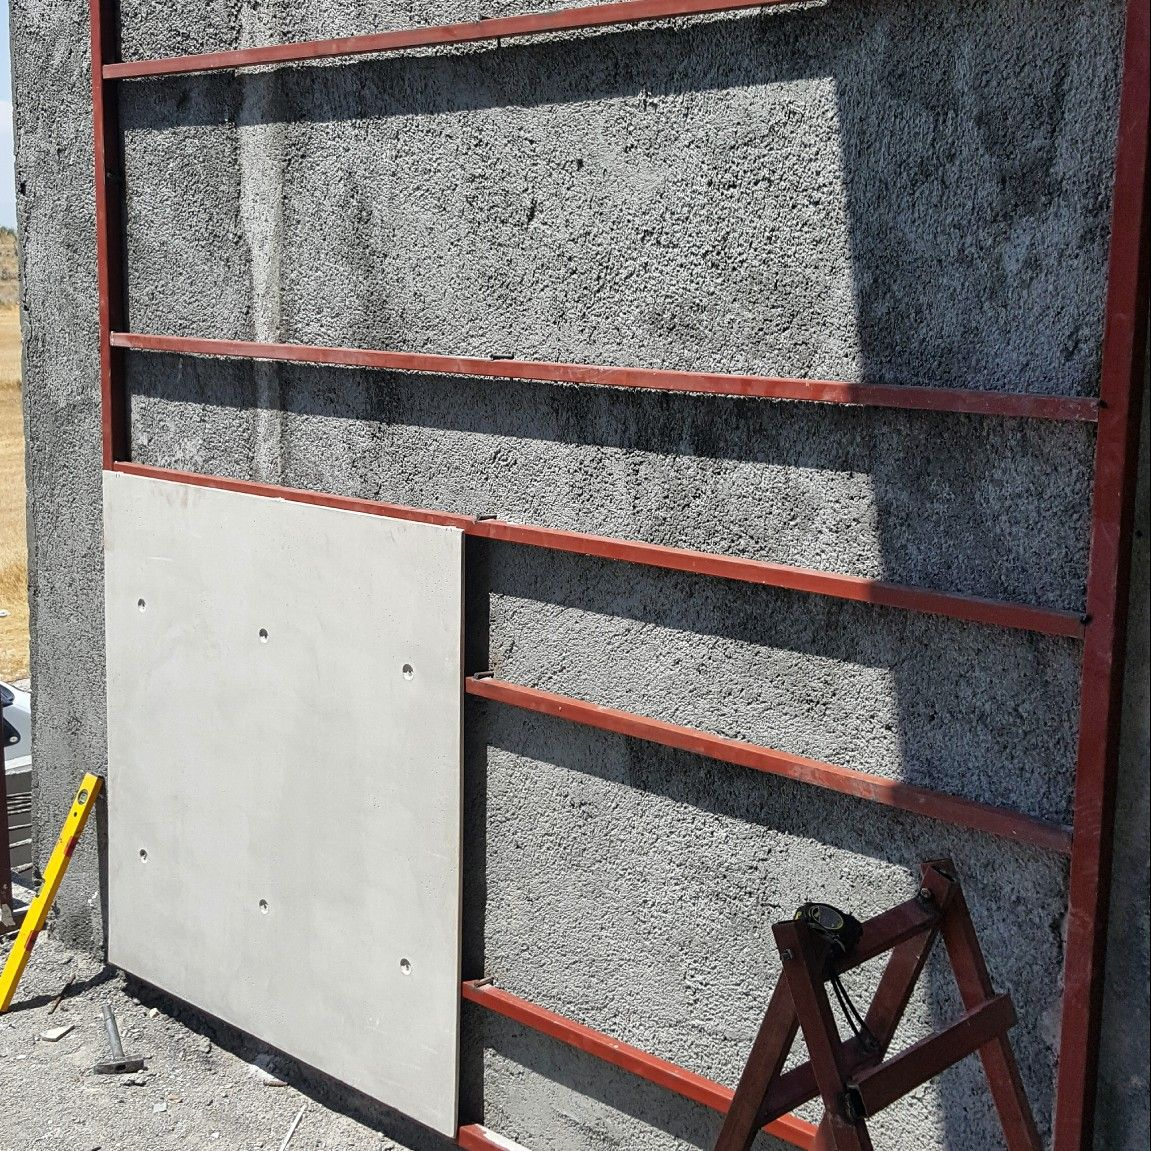 Concrete Panel Installation The Easiest Way Of Concrete Facade Cladding Cretox Natural Concrete Panels Facade Cladding Concrete Design Concrete Wall Panels